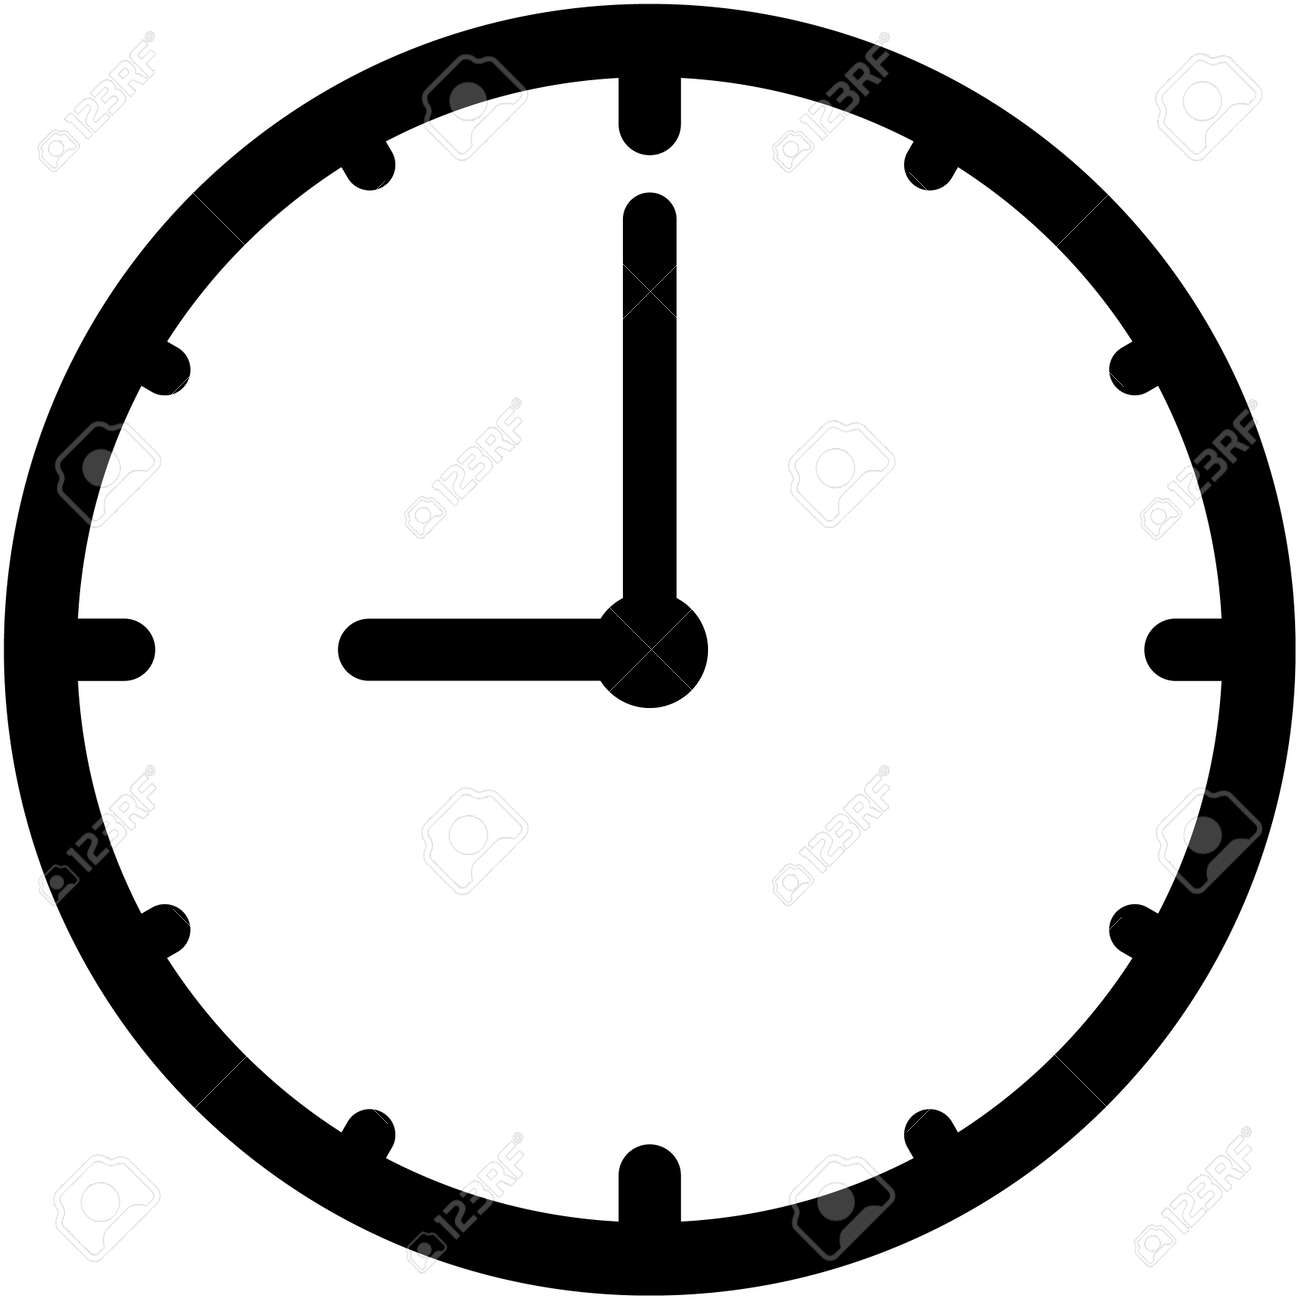 vector clock icon isolated royalty free cliparts vectors and stock rh 123rf com clock icon vector free download clock icon vector free download